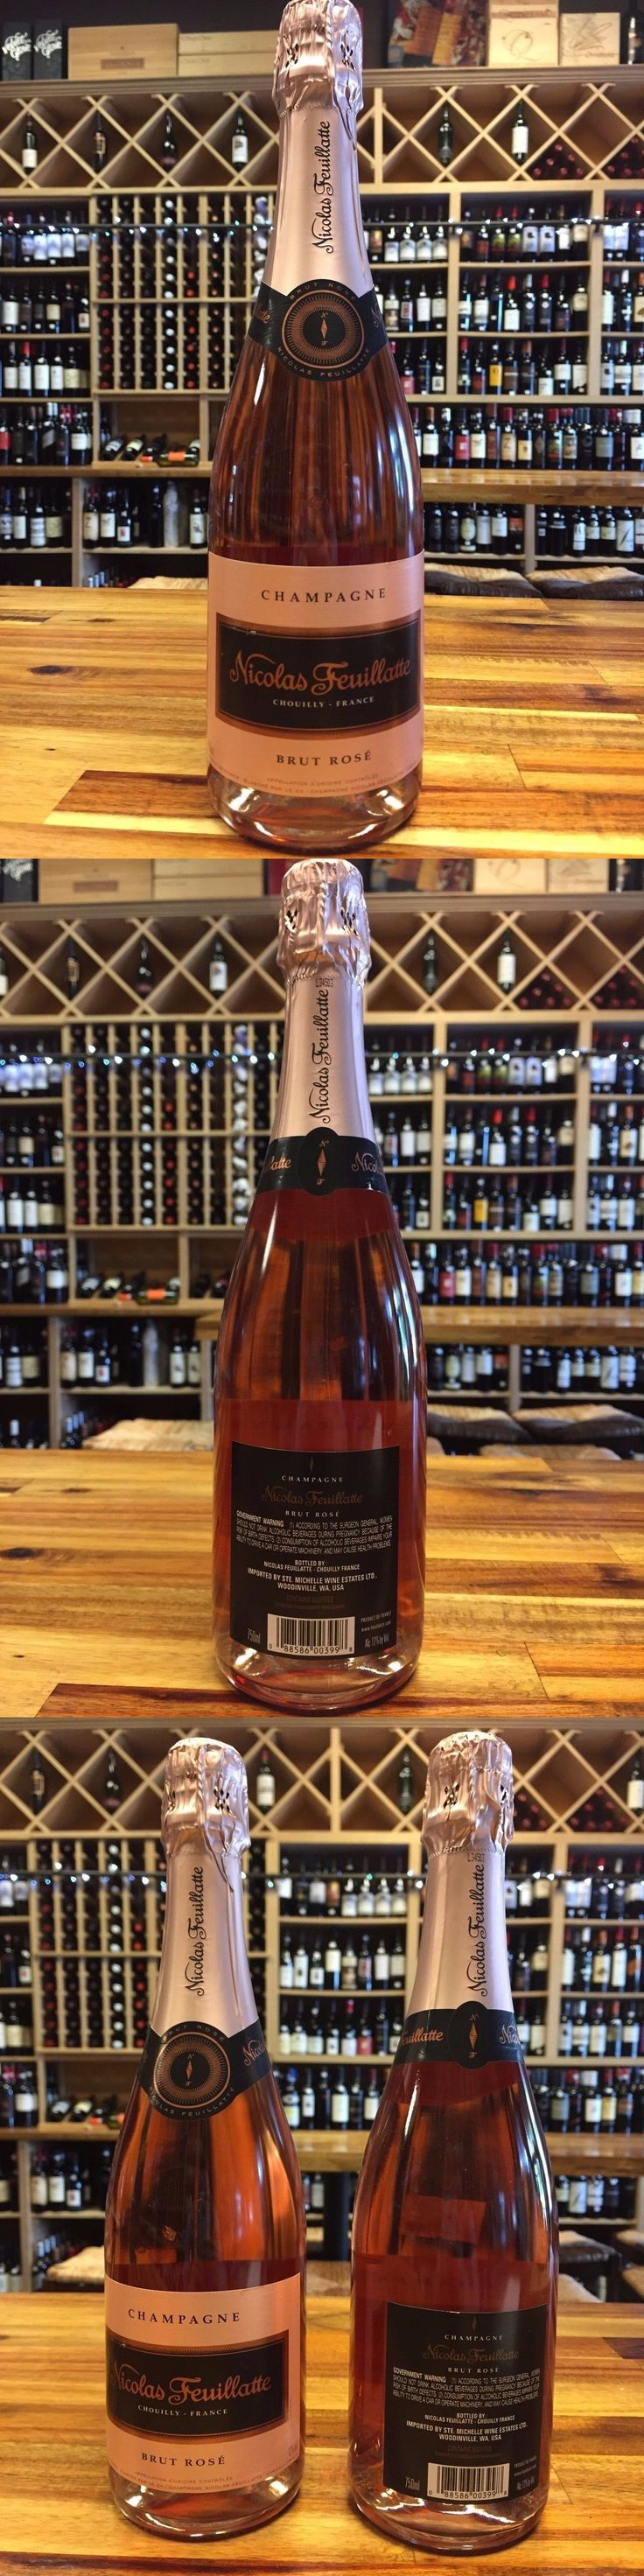 Champagne and Sparkling Wines 26272: Nicolas Feuillatte Brut Rose Nv Champagne -- **12 Bottles** -> BUY IT NOW ONLY: $729.6 on eBay!